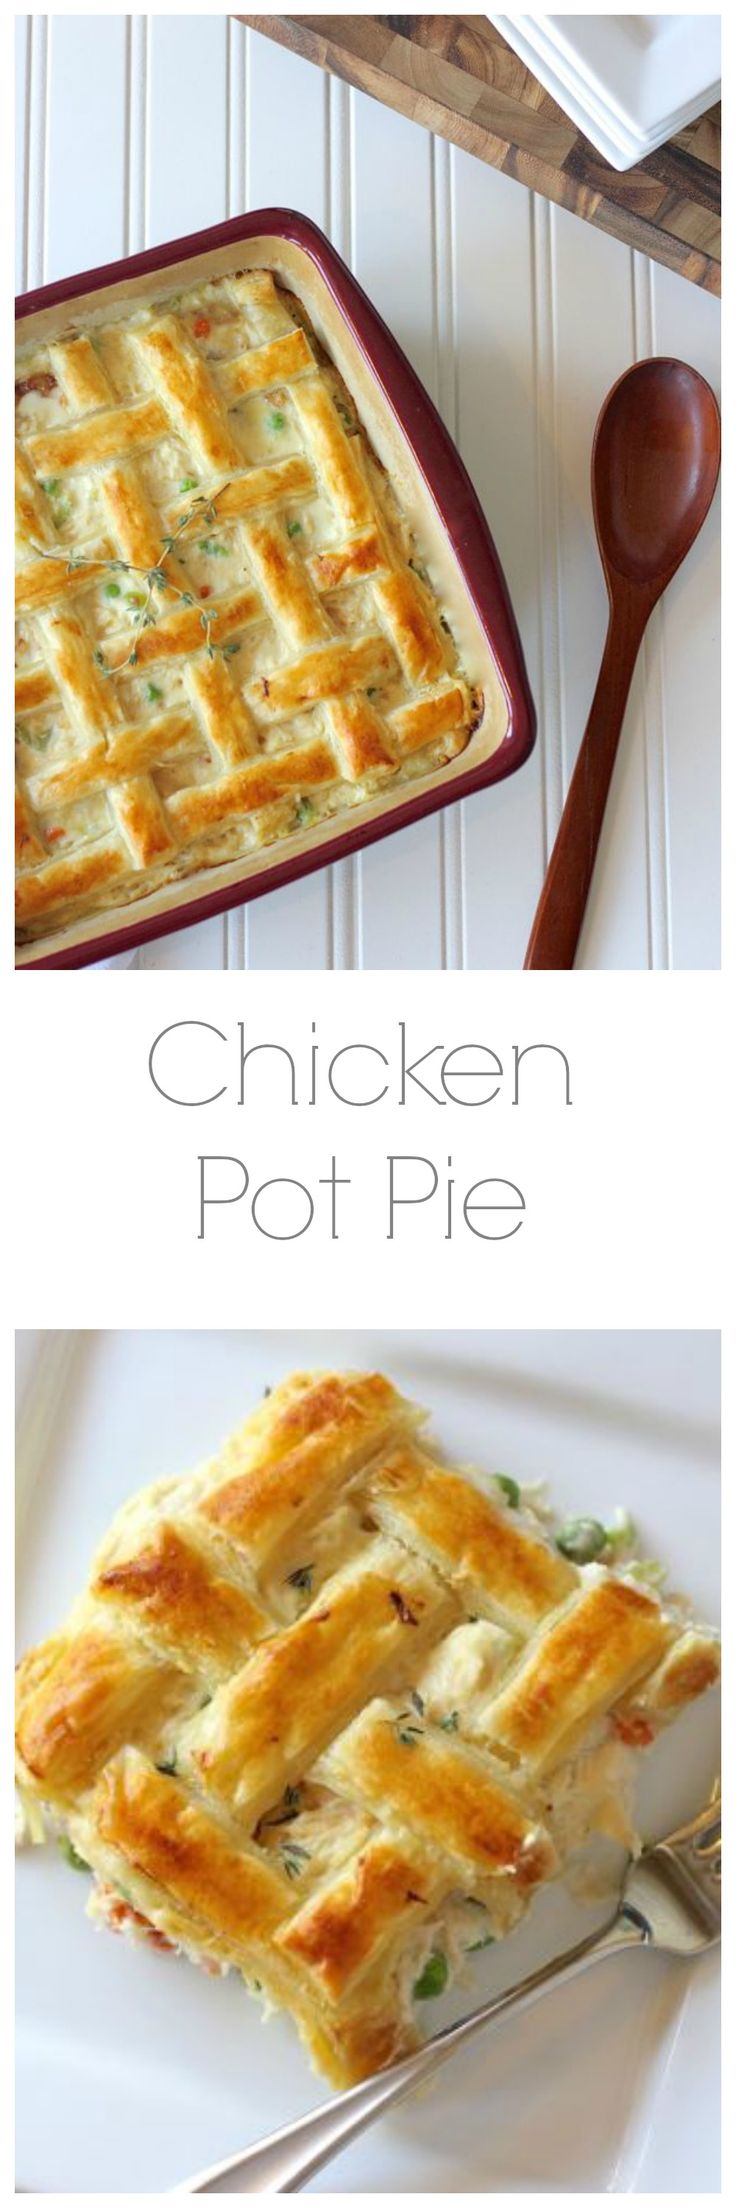 with hearts Pie Chicken to three easy  and shortcuts fake it quick Pot exclusive make chrome